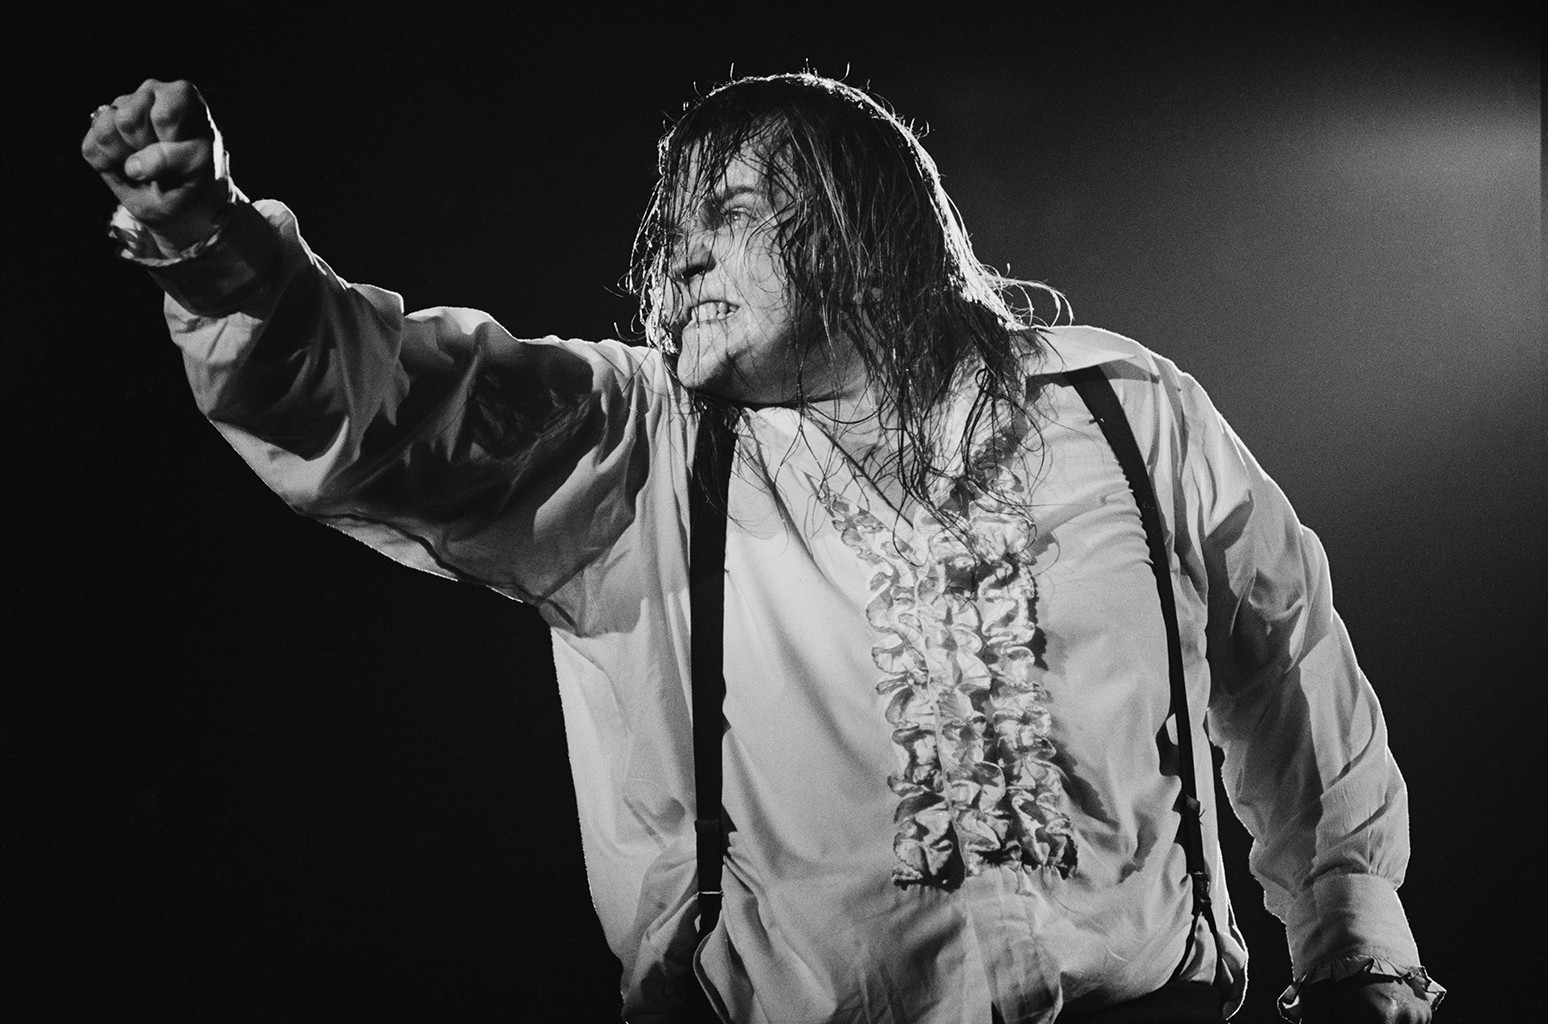 Meat Loaf performs during the Bat Out Of Hell tour